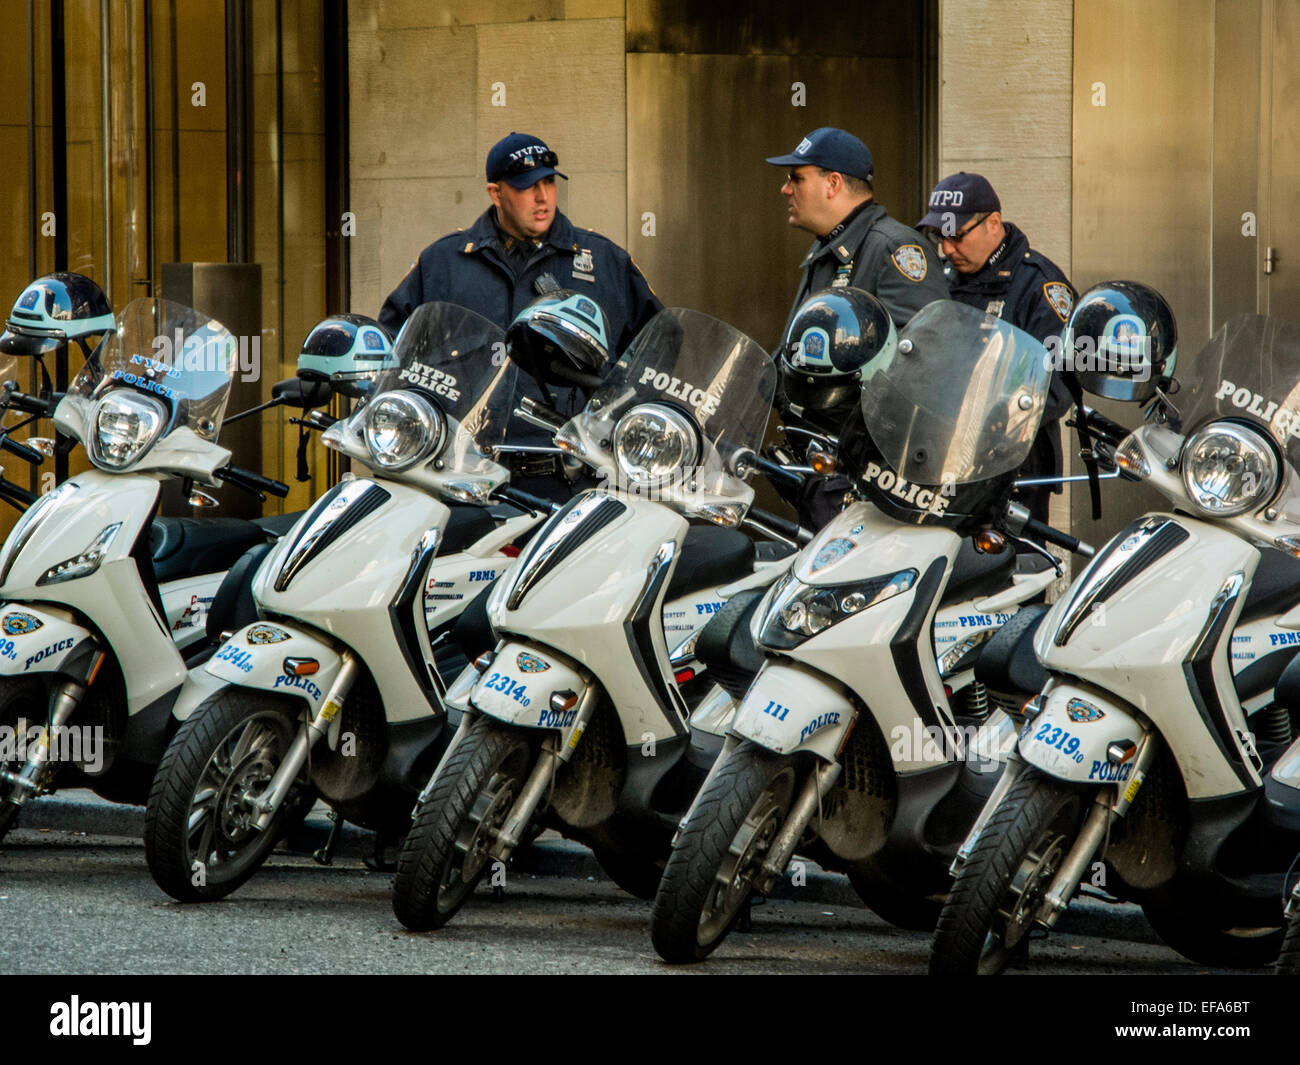 New York City Police Department motor scooters are lined up at a Manhattan sidewalk. Note uniformed officers. - Stock Image